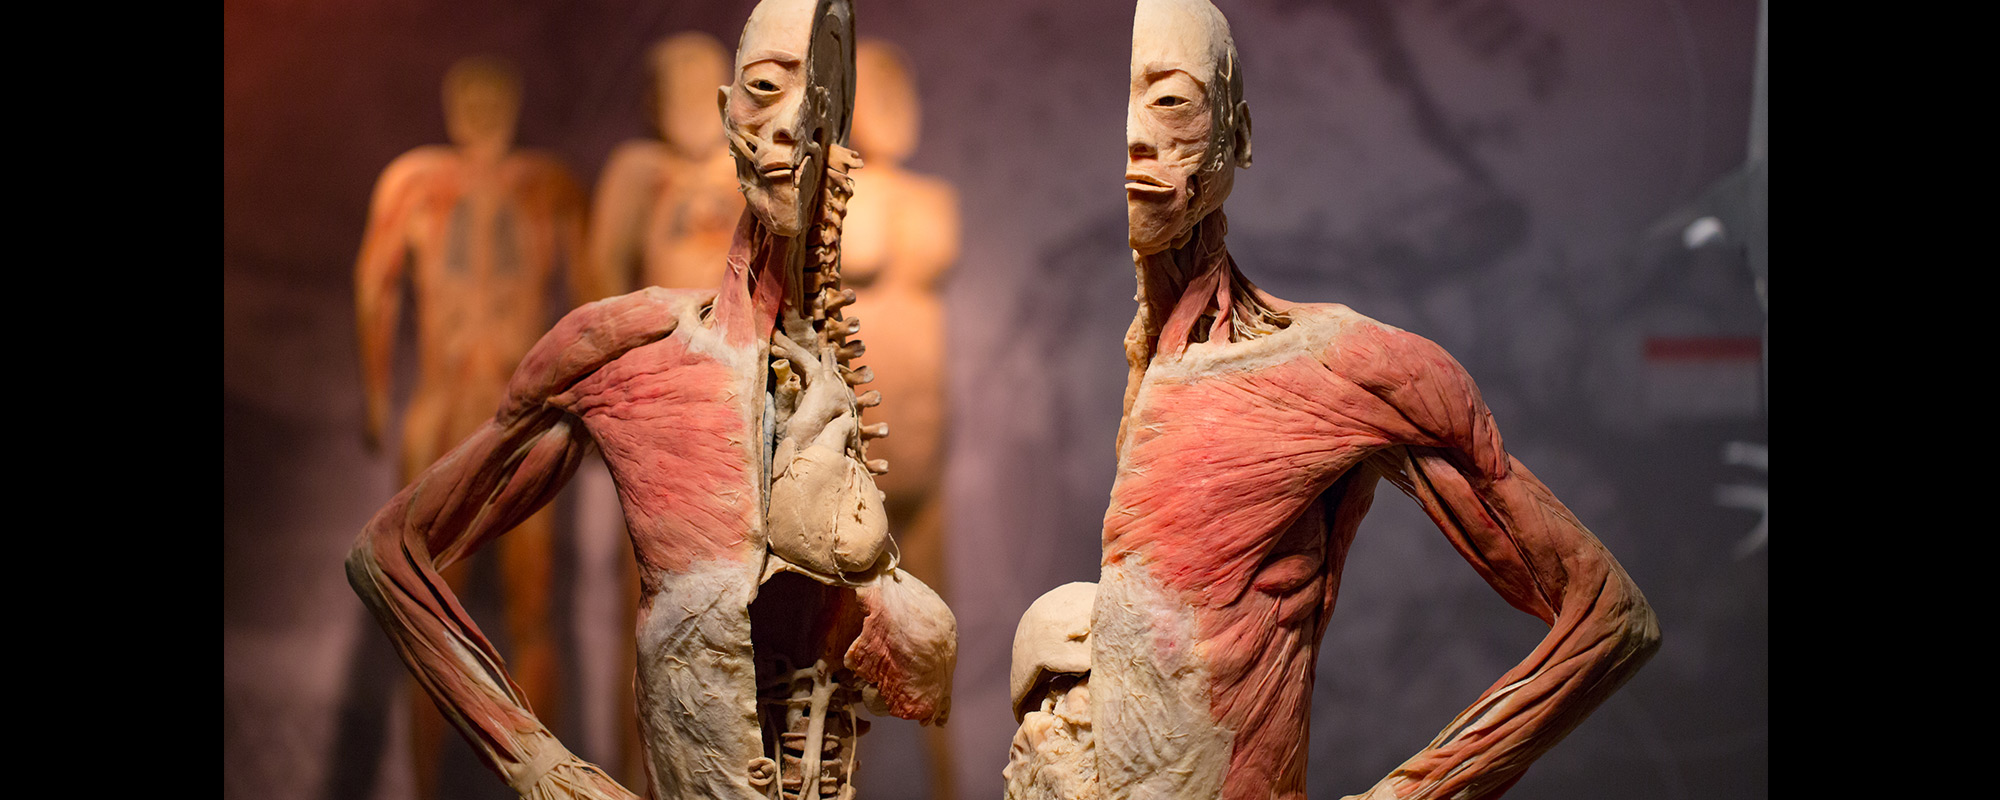 REAL BODIES at Bally's attraction